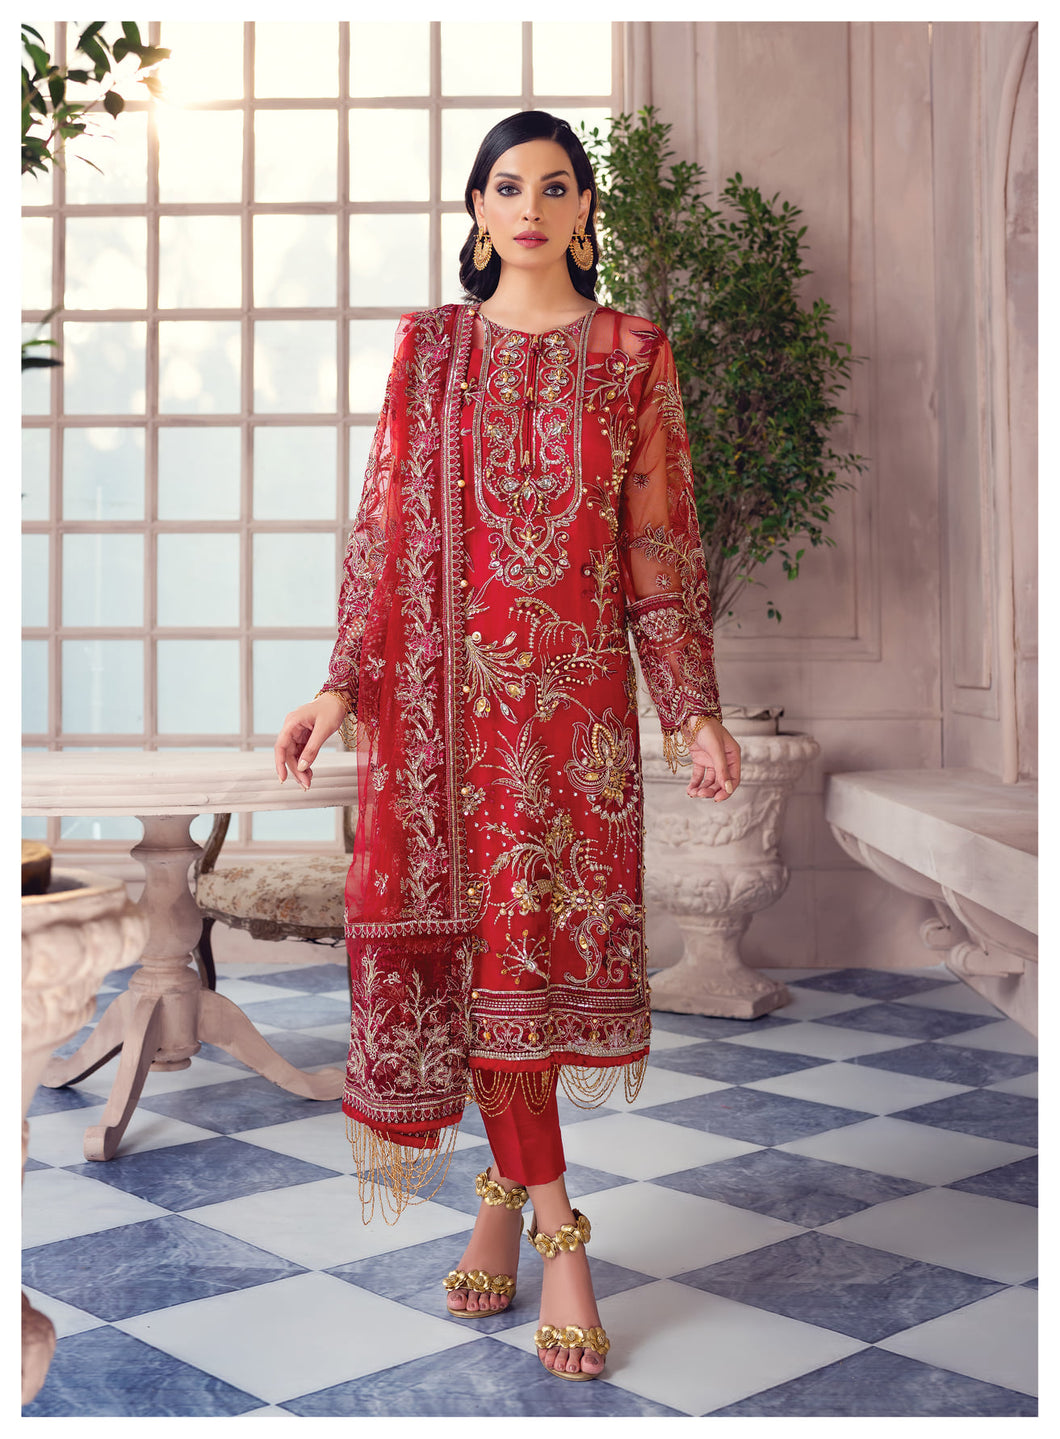 Buy GULAAL Alayna AG-06 Maven Pakistani Designer Party Wear Suit from Lebaasonline at best price .